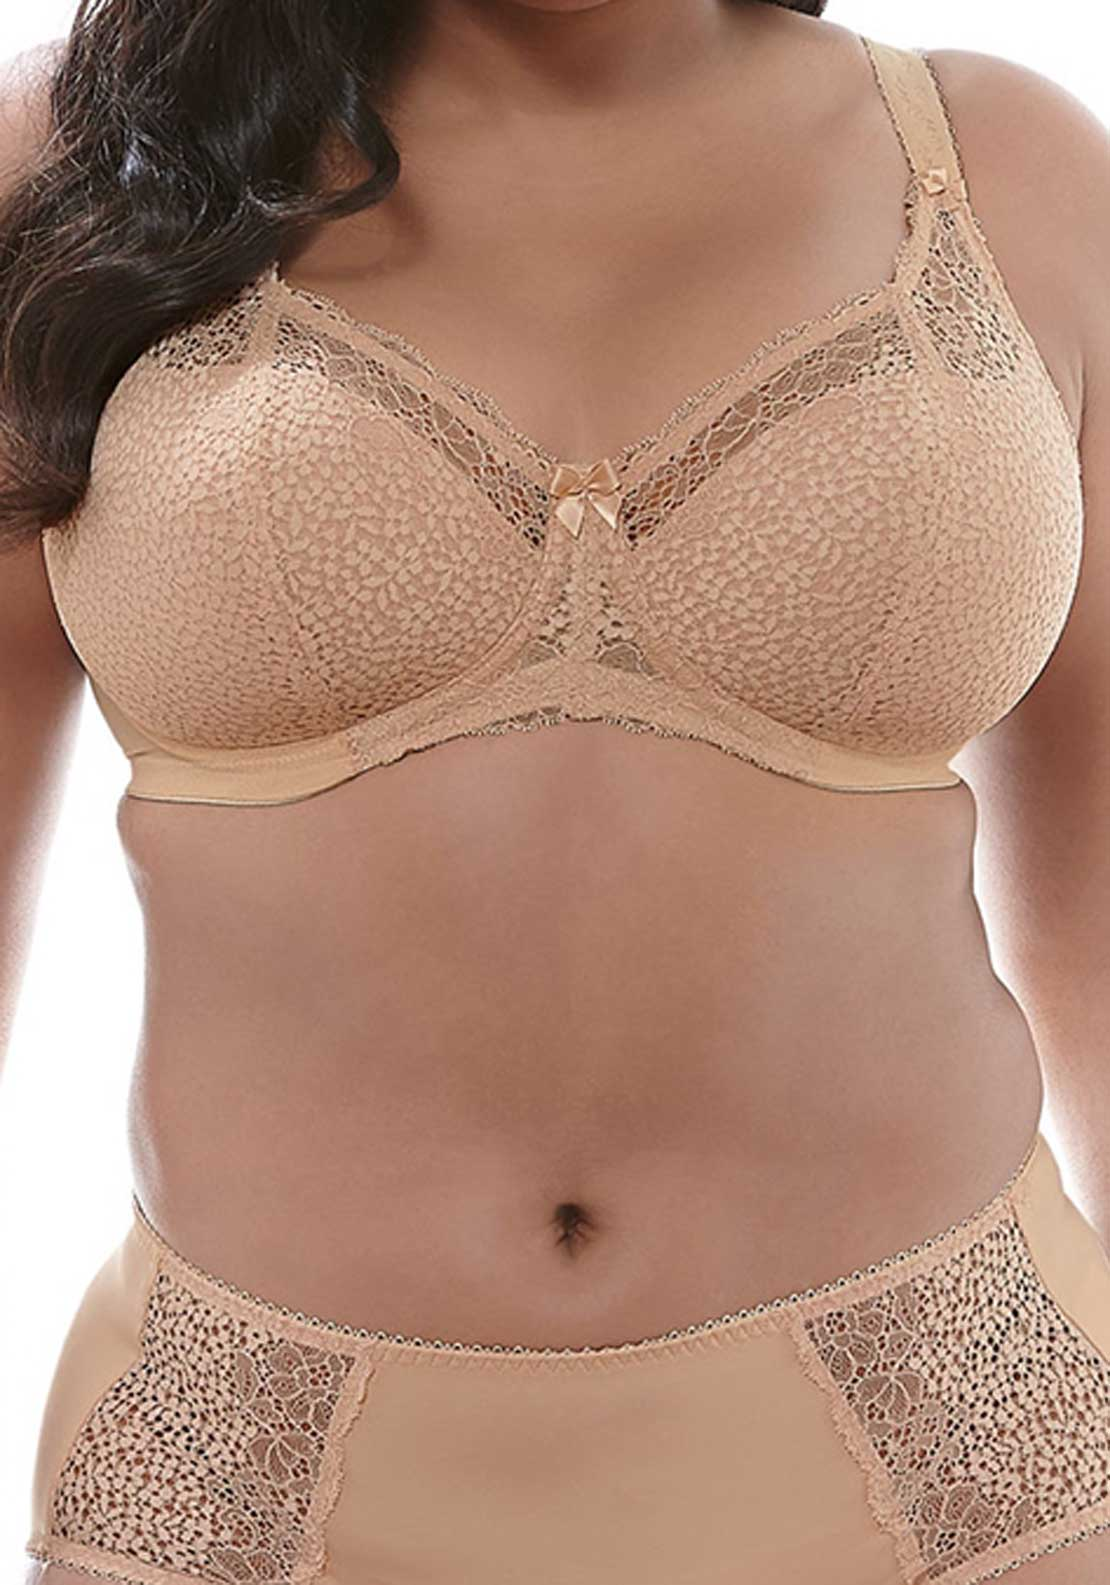 Goddess Bra Michelle Lace Full Cup Underwired Bra, Nude